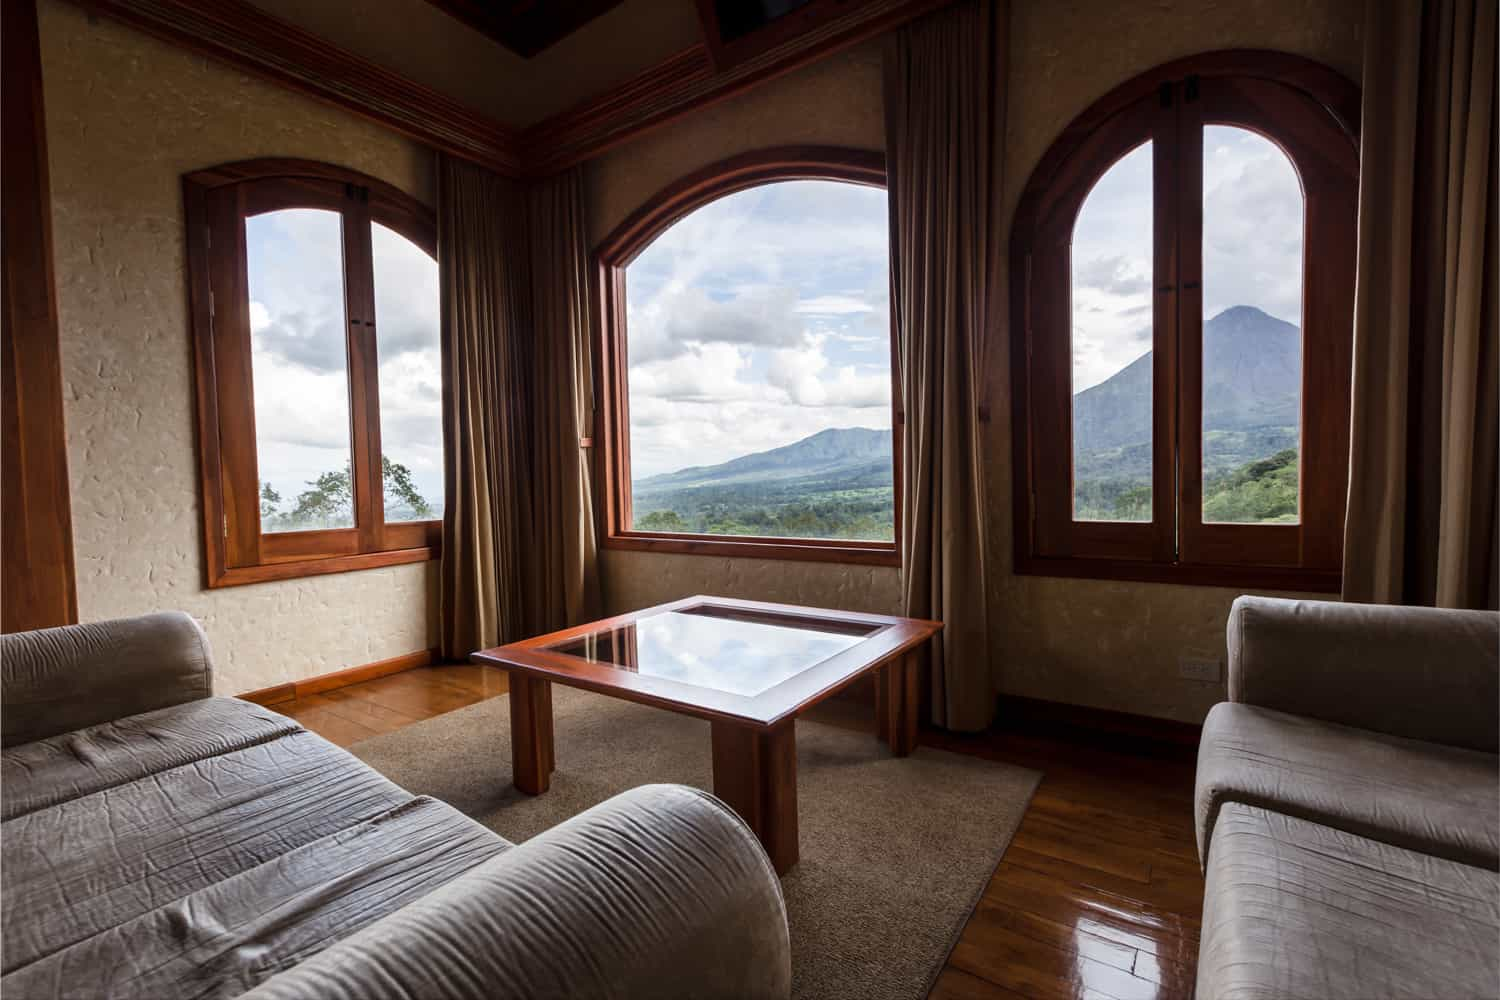 Arched windows in Spring Resort penthouse with view of rainforest.